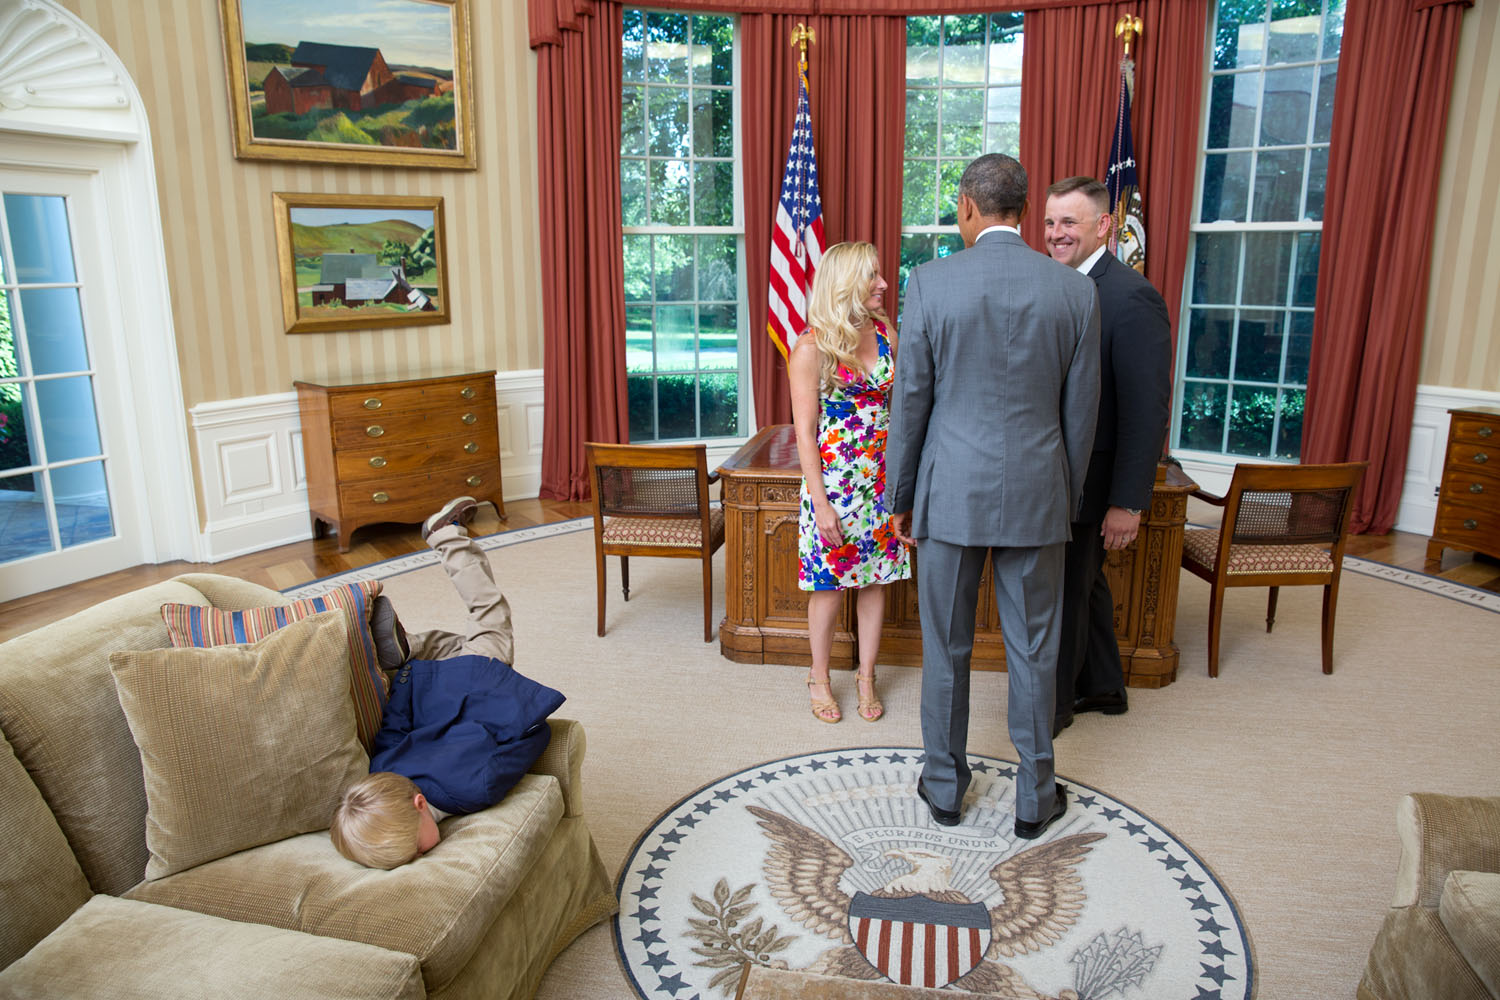 A young boy face-plants onto the sofa in the Oval Office as the president greets his parents - a departing United States Secret Service agent and his wife. Official White House photo by Lawrence Jackson.